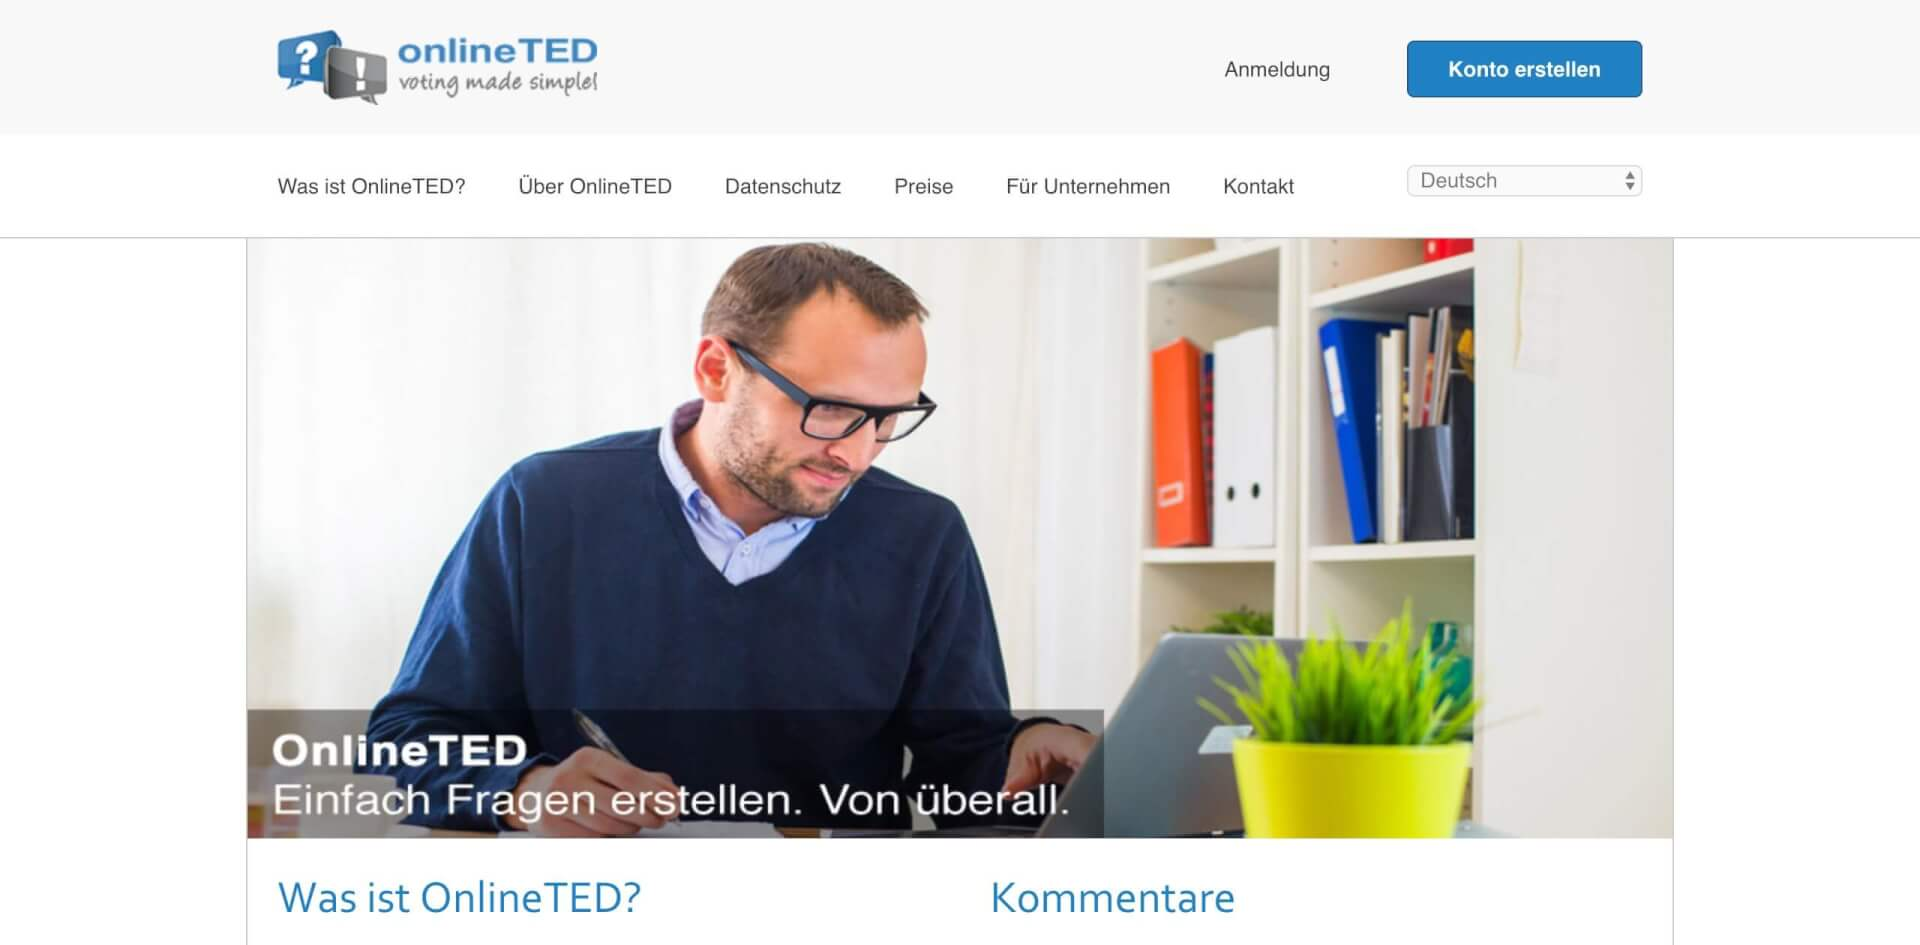 OnlineTED Voting Tool interaktiver Vortrag JSS Digital 1